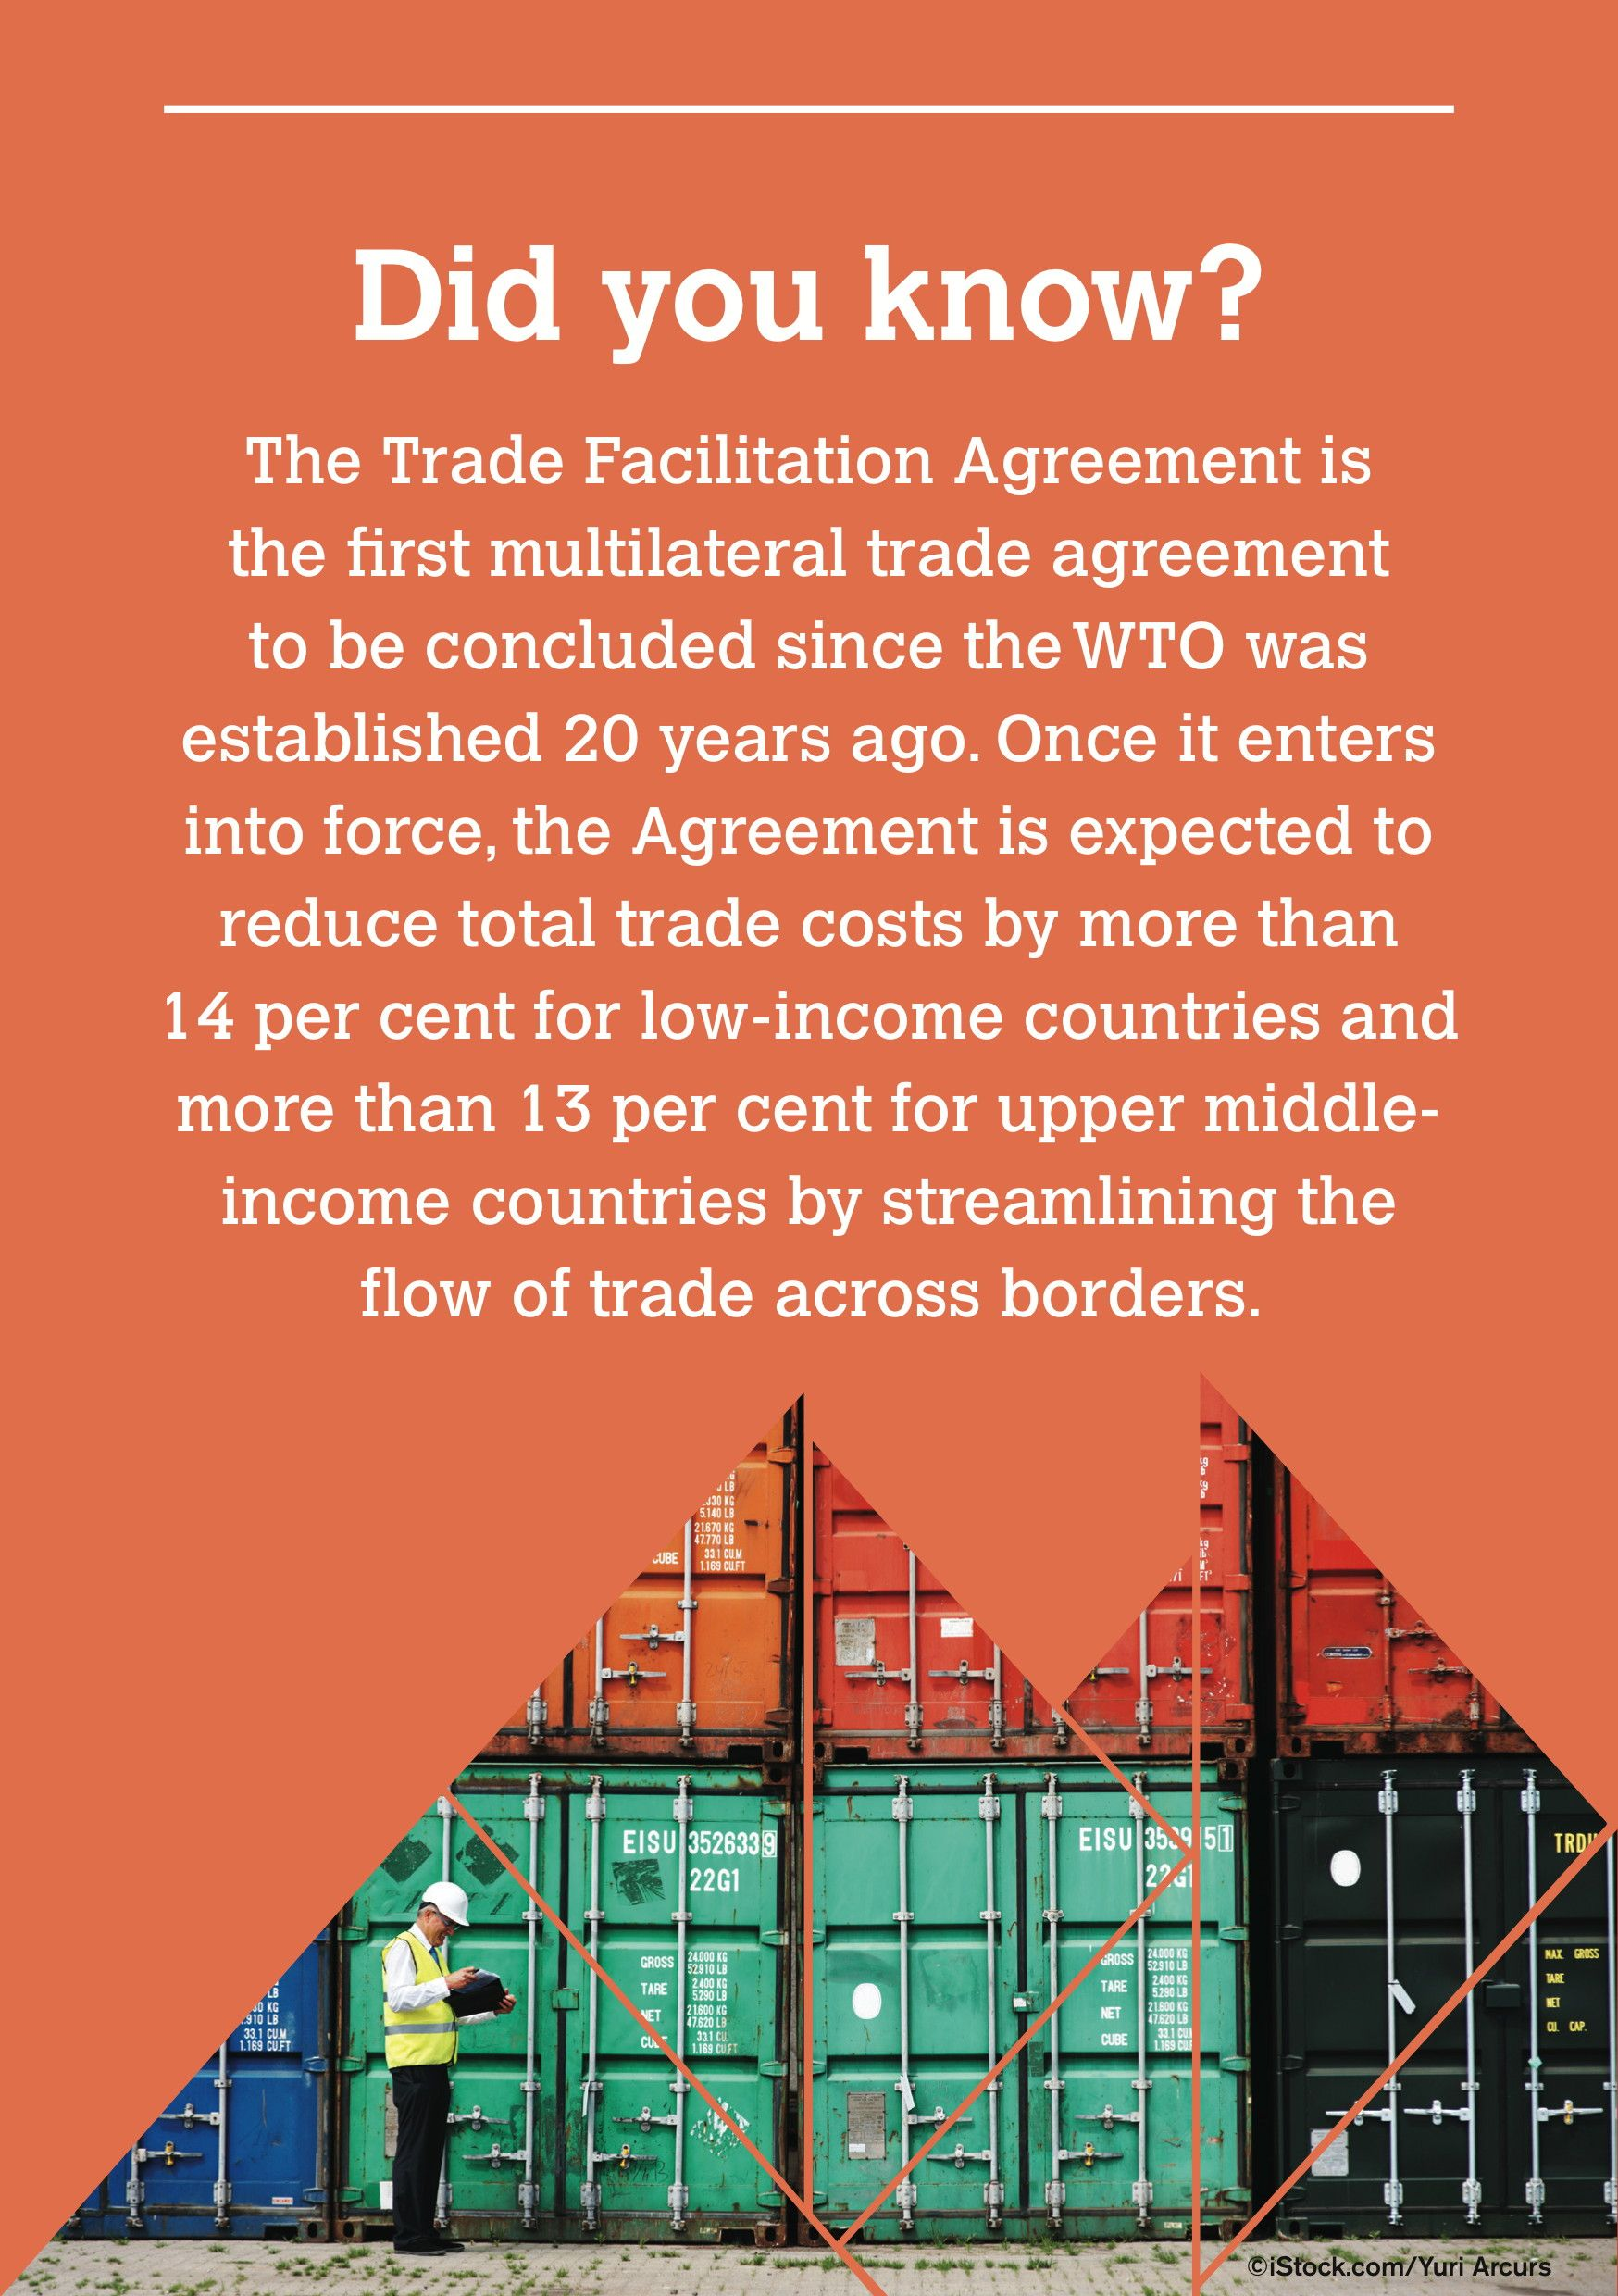 Wto Trade Facilitation Agreement Easing The Flow Of Goods Across